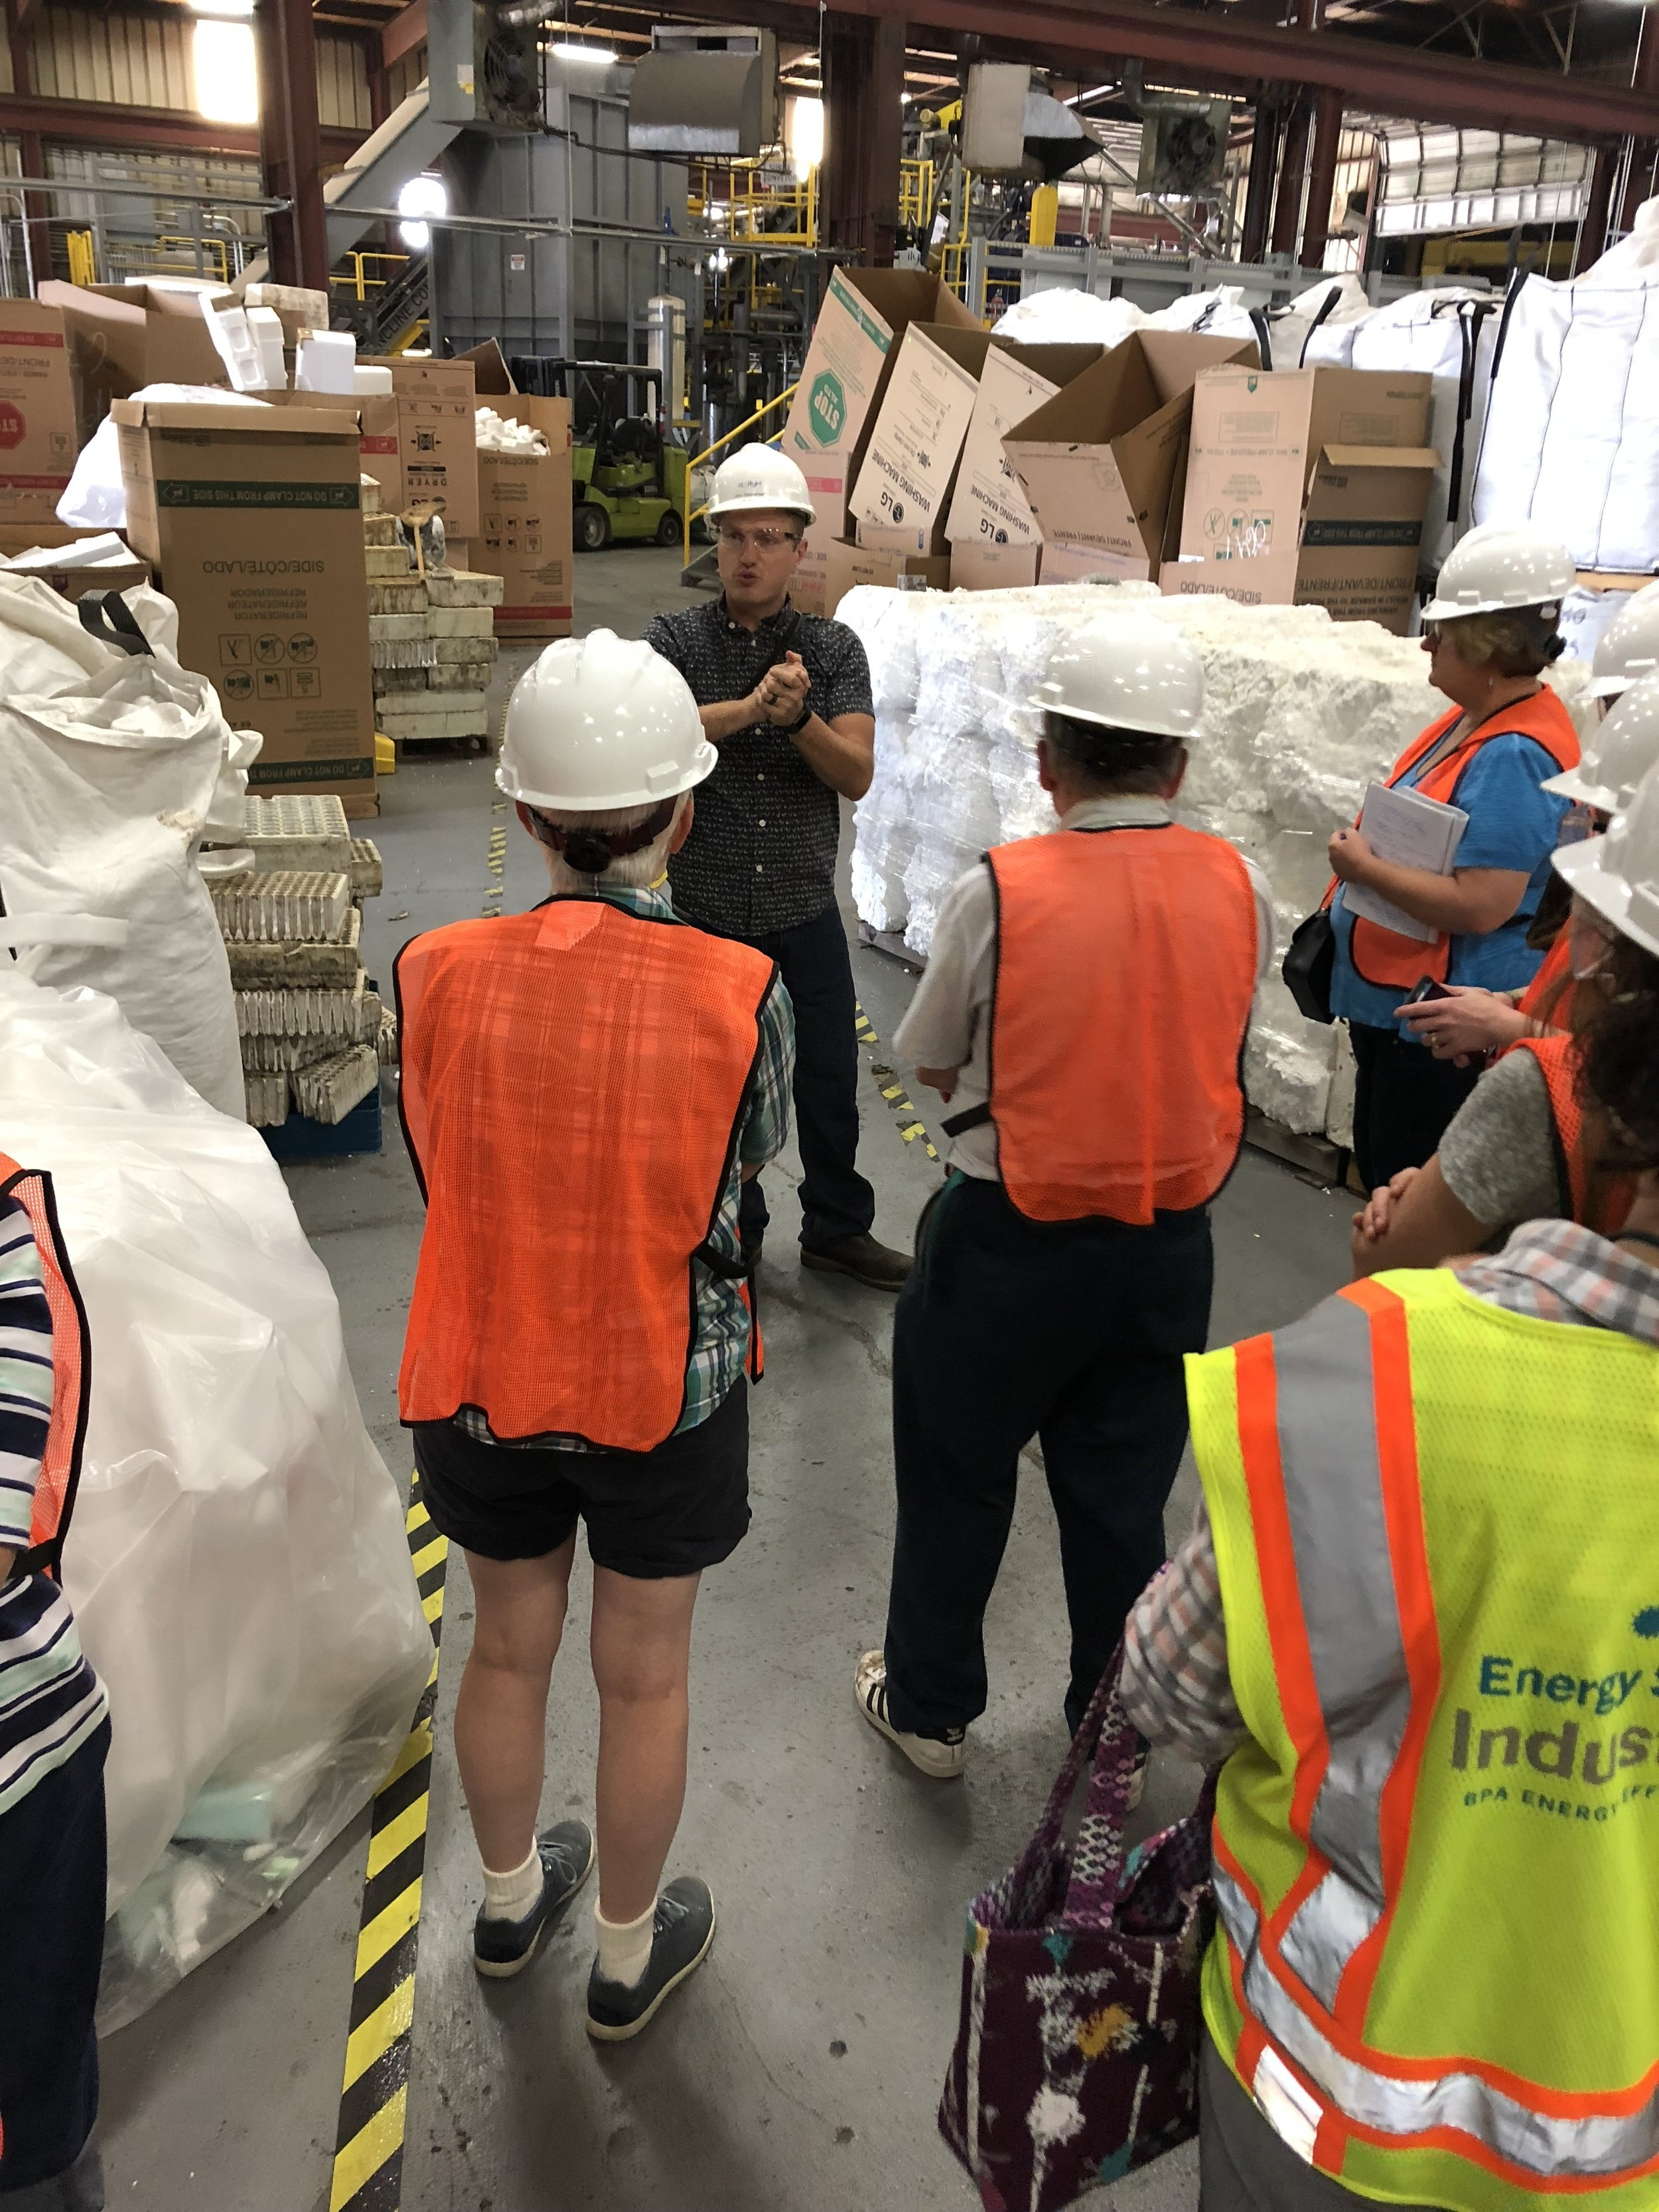 - The Master Recycler Program organizes tours for graduates of the class as part of the ongoing training program. Master Recyclers have explored local recyclers, the landfill in Arlington and non-profit efforts over the years. Where should we go next? Send your ideas to masterrecycler@portlandoregon.gov